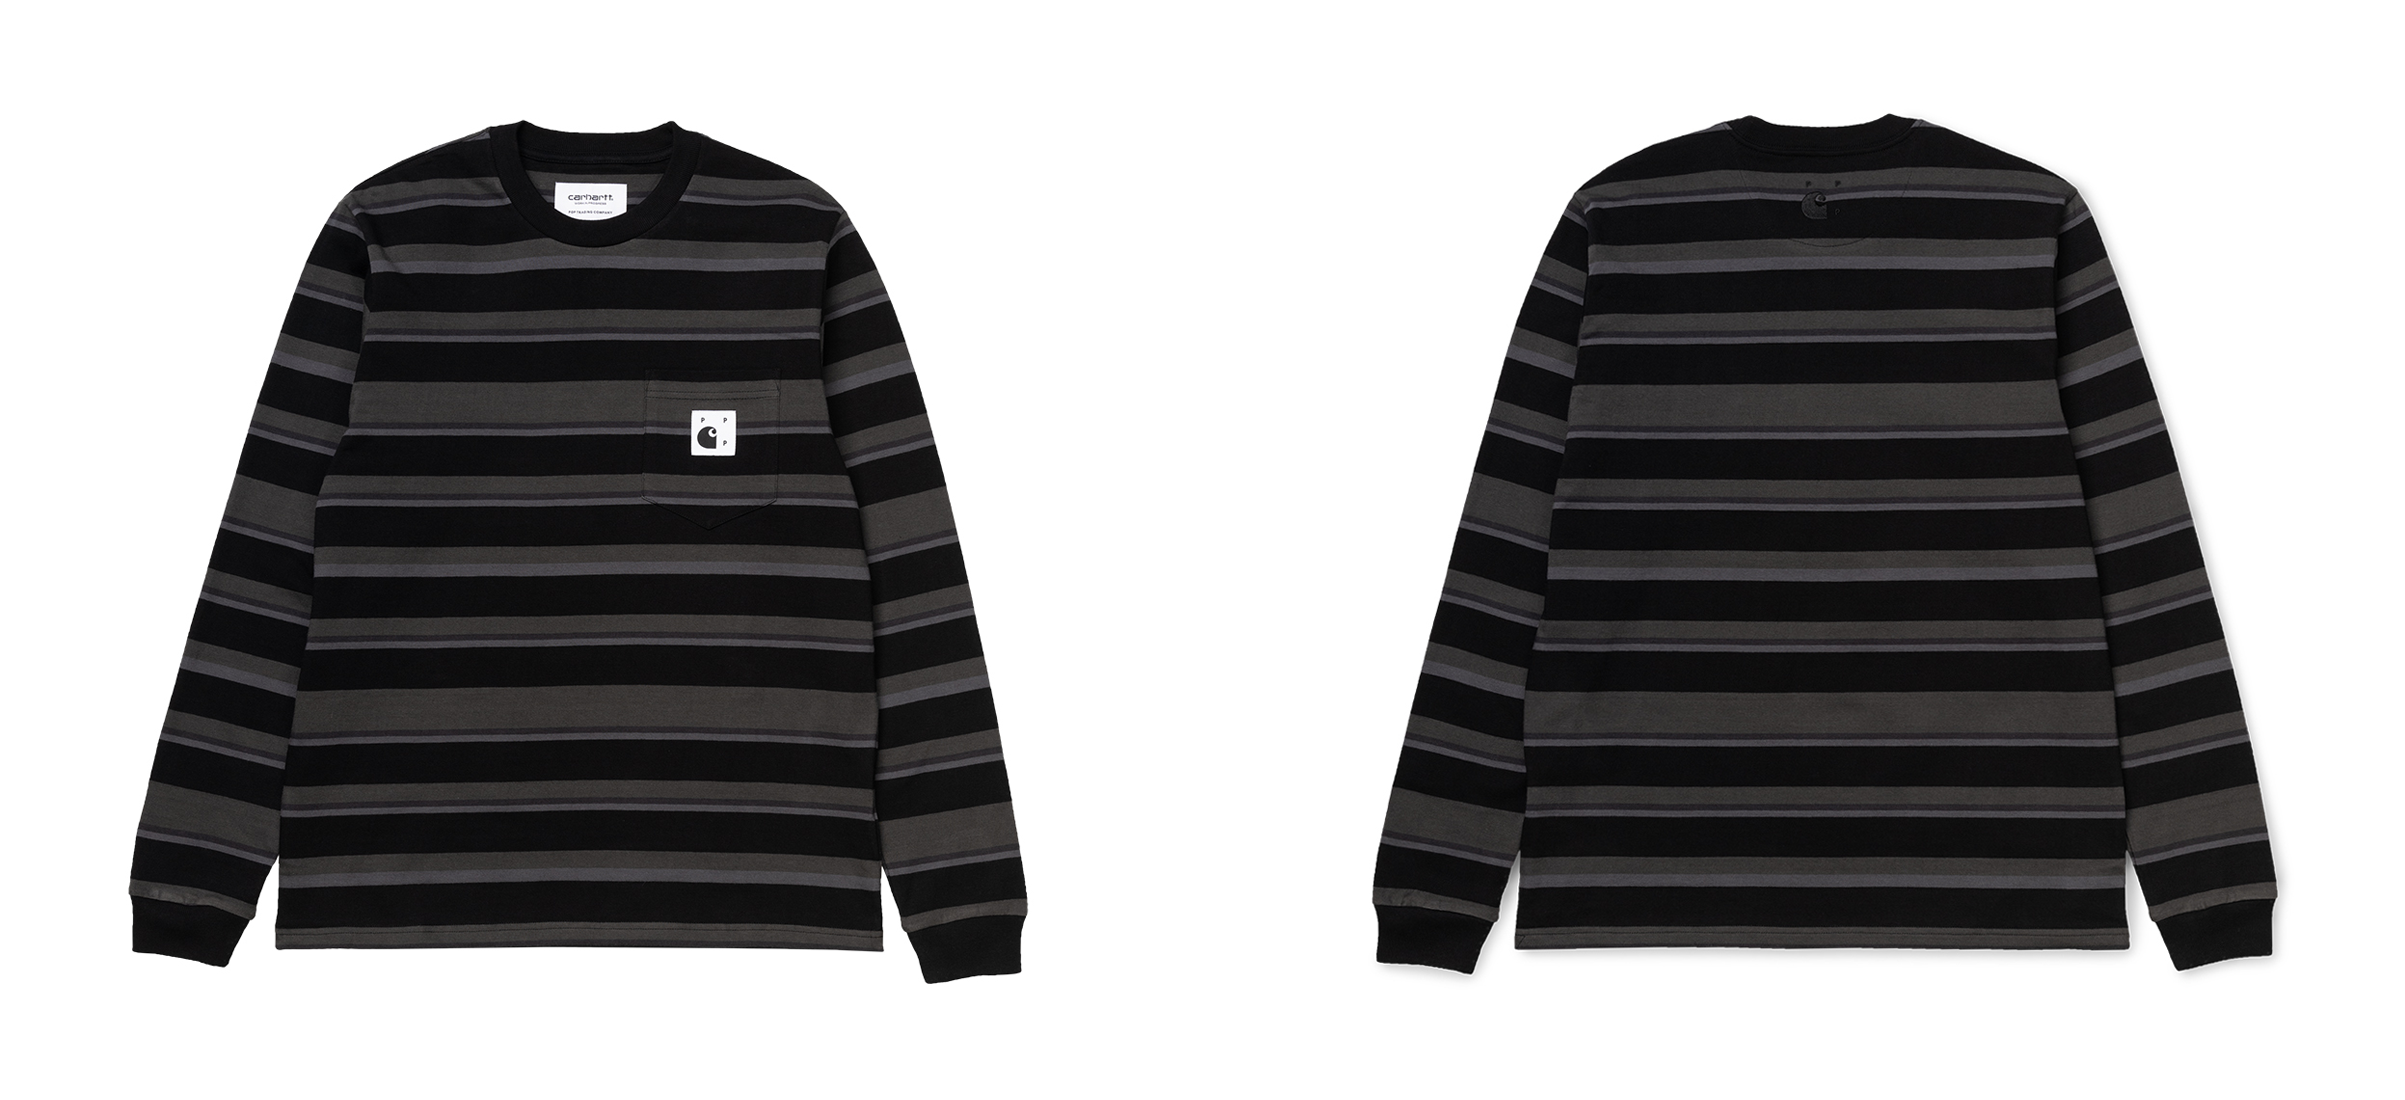 pop-trading-company-carhartt-wip-collab-product-5